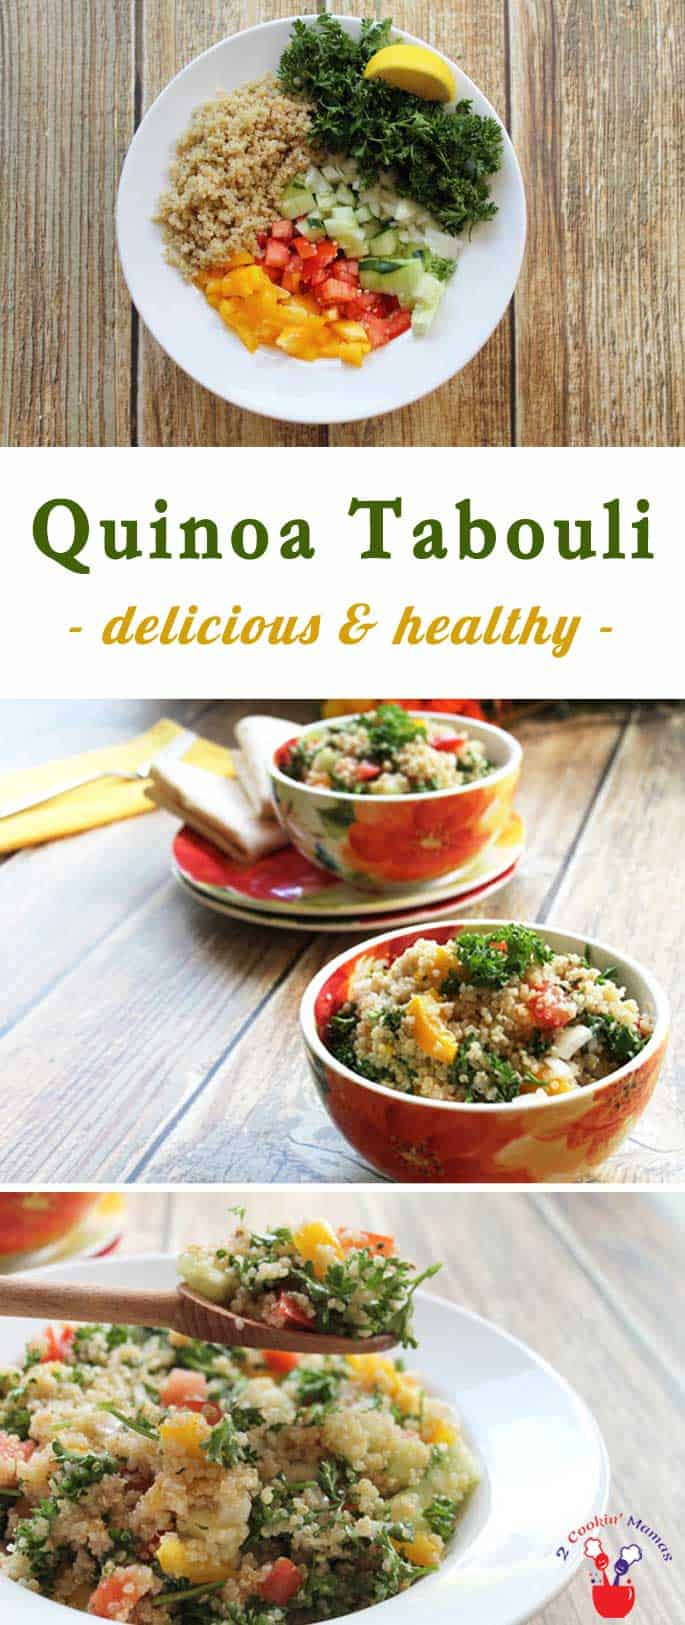 Quinoa tabouli takes traditional tabouli to the next level! A nutrient-rich salad recipe that's packed full of a veritable garden of vegetables providing protein, fiber and antioxidants. #quinoa #tabouli #glutenfree #salad #healthyrecipe #lunch